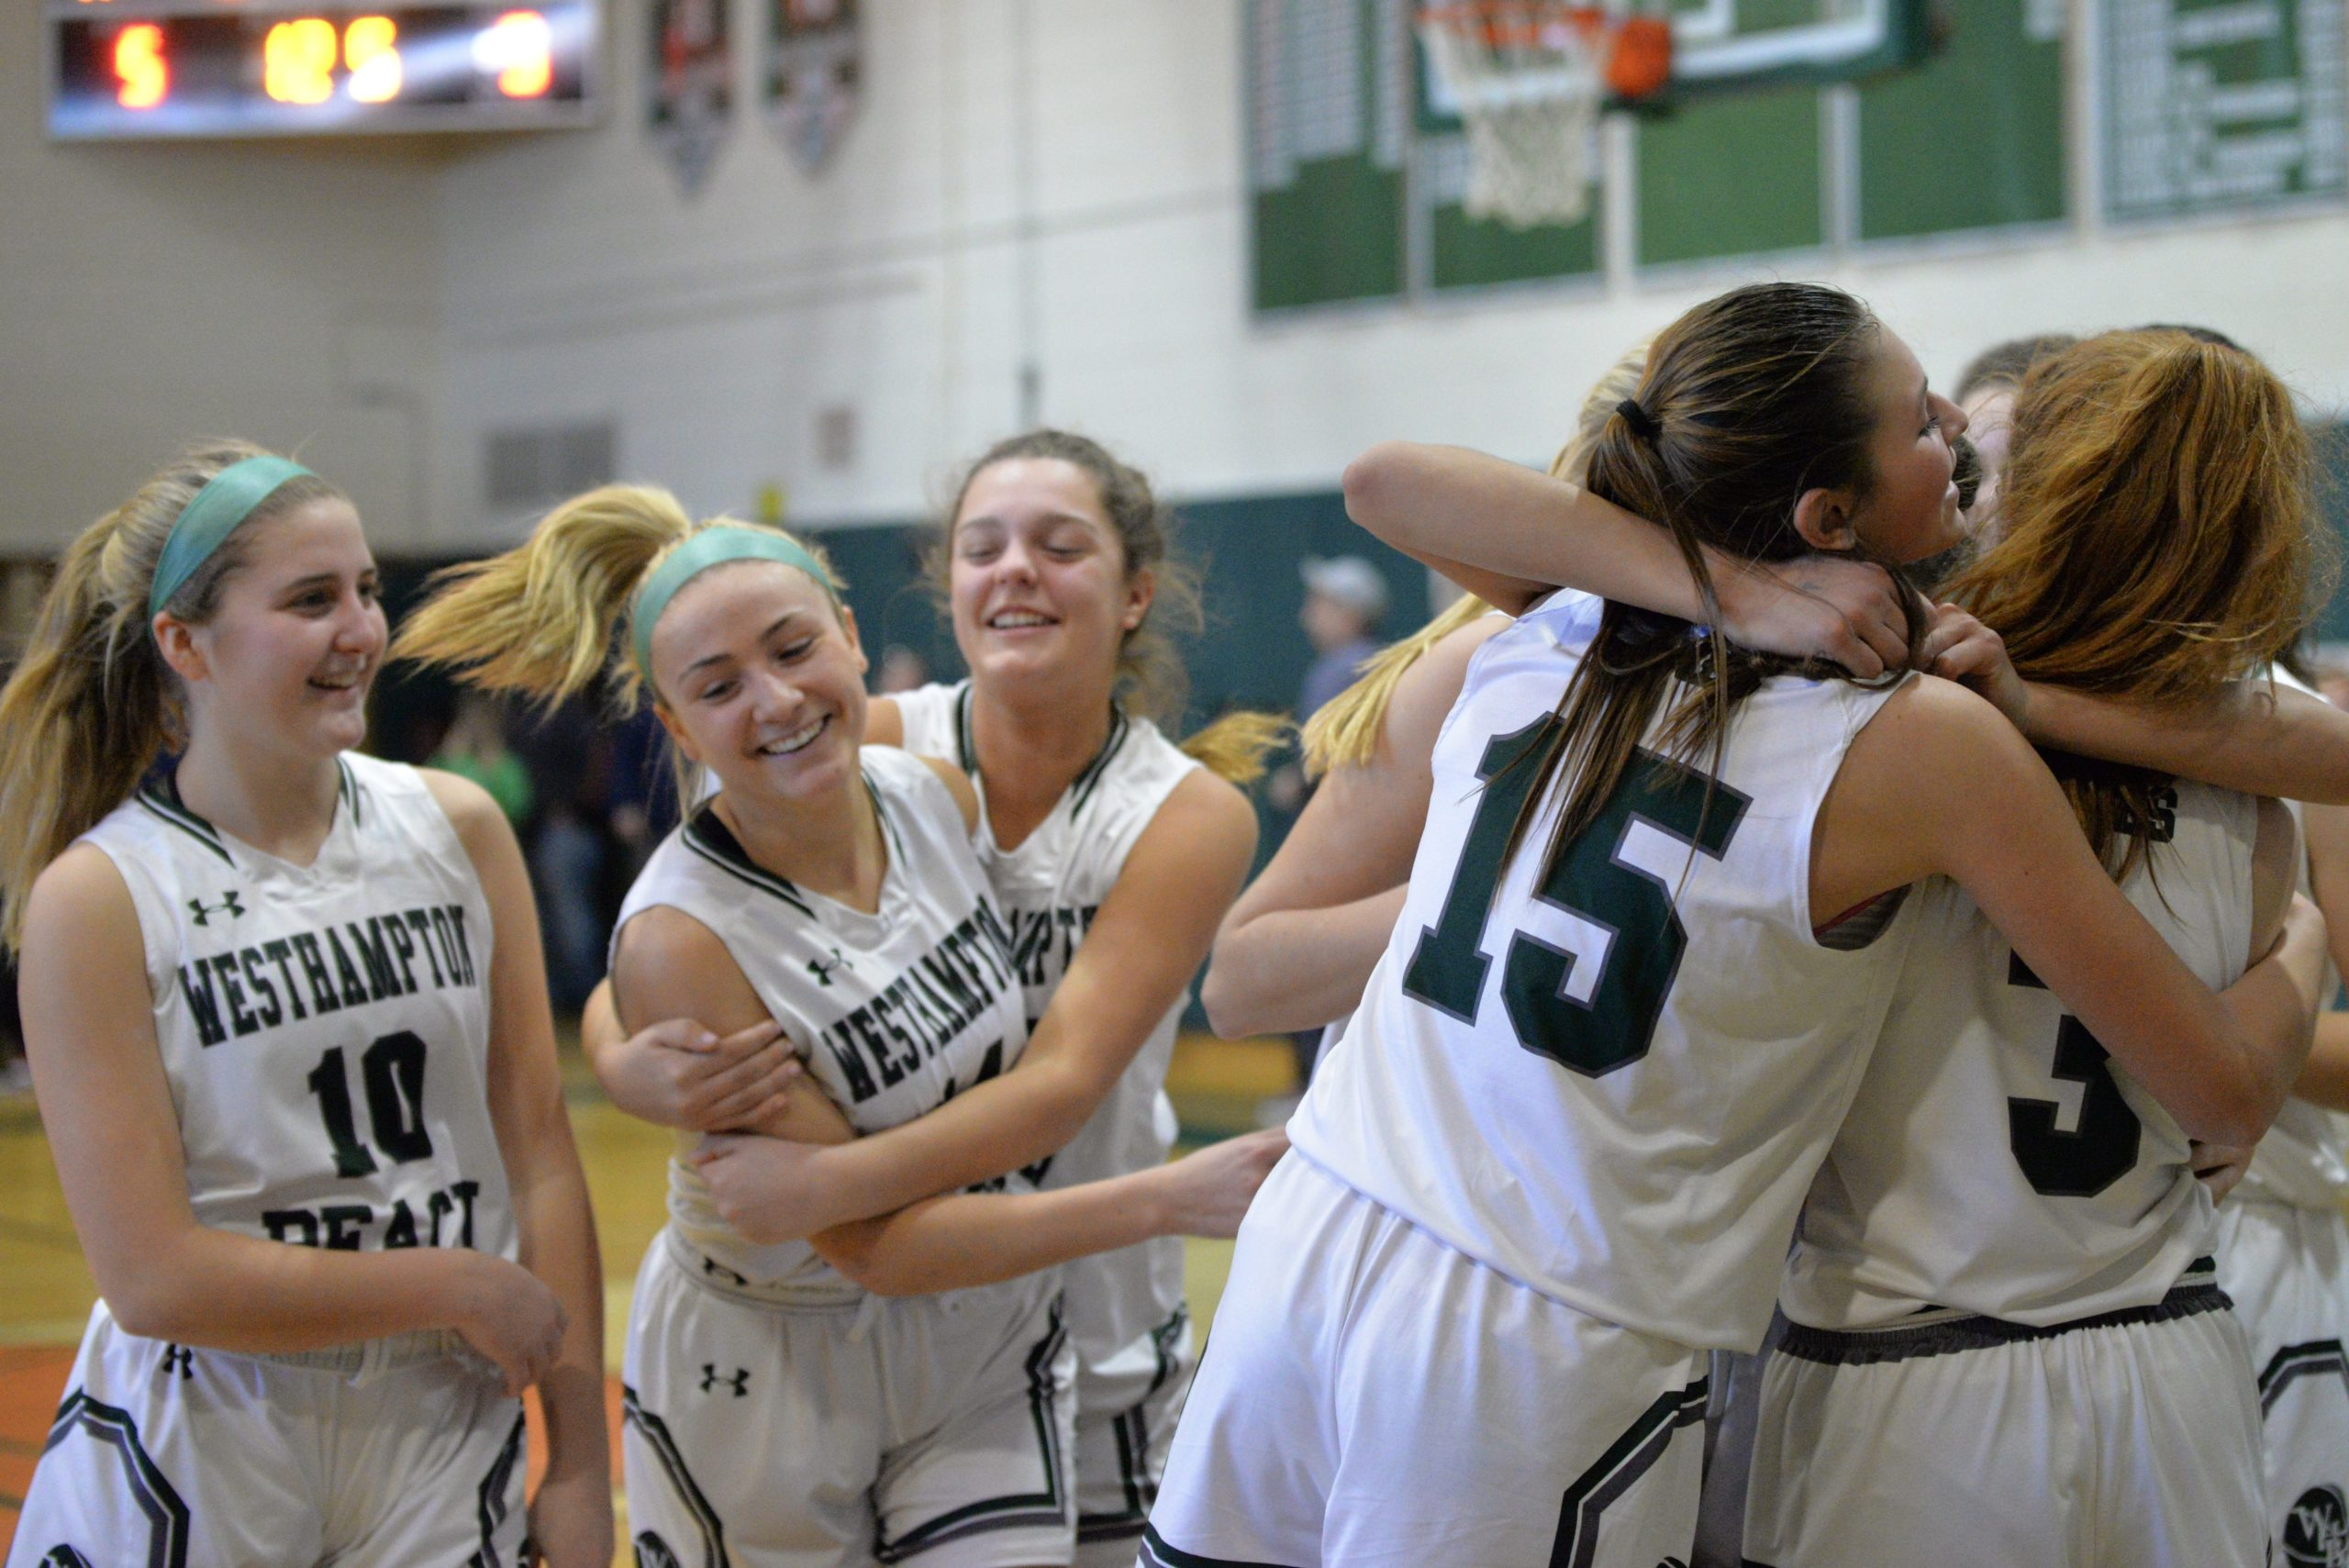 The Lady Canes are all smiles after defeating Hauppauge in the county semis on Friday afternoon.